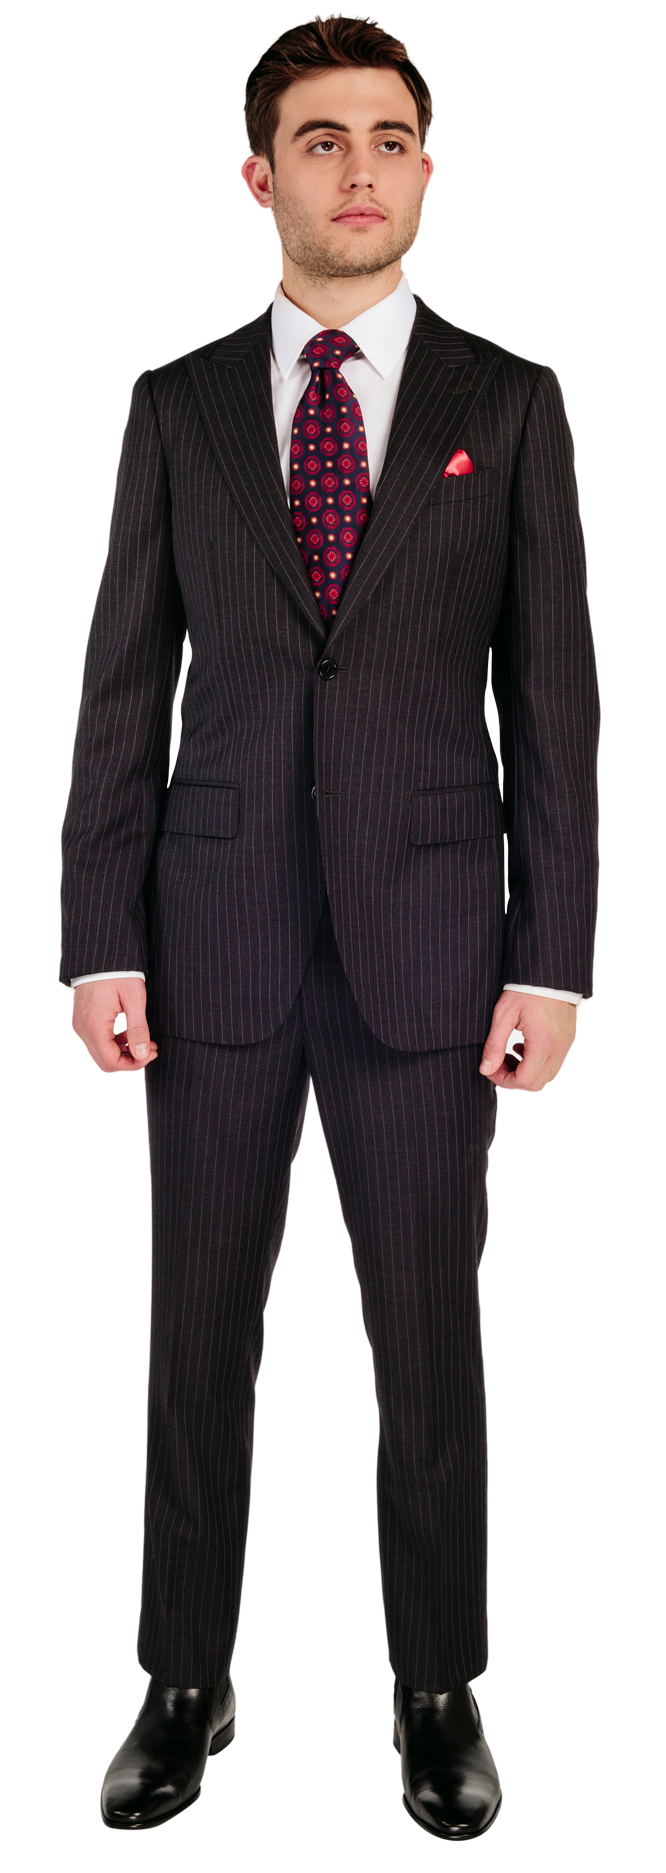 Groom Transparent PNG Sticker - Guy In A Suit PNG